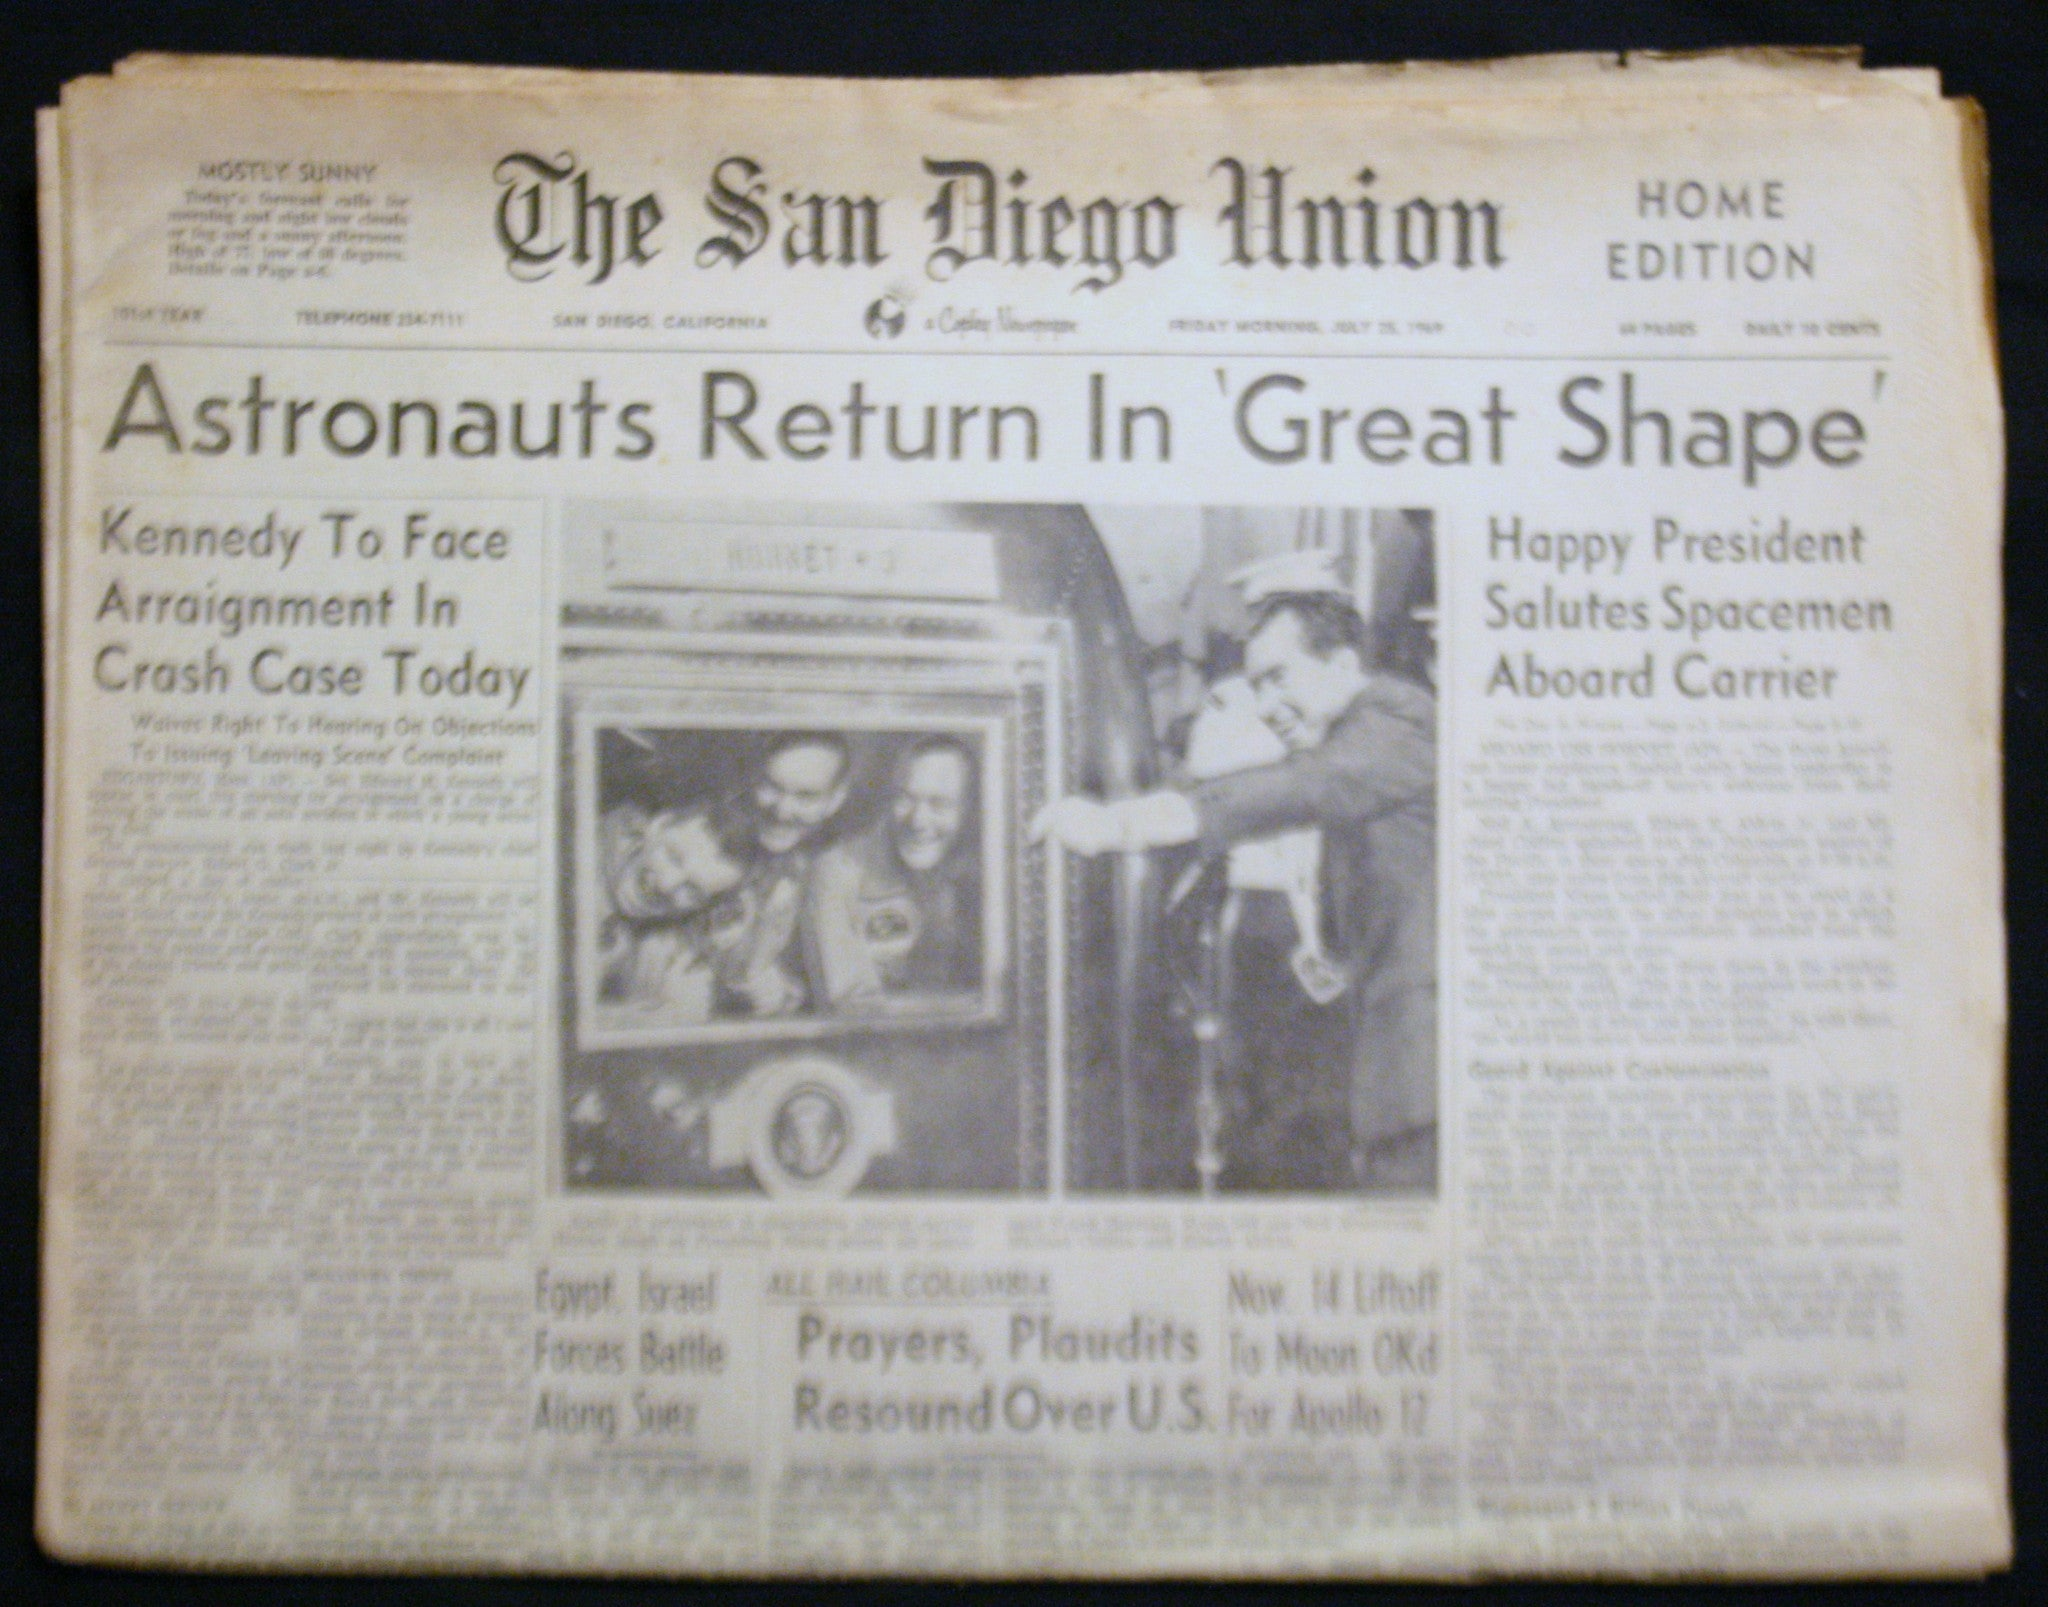 07 25 1969 NEWS San Diego Union - Astronauts Return Ted Kennedy